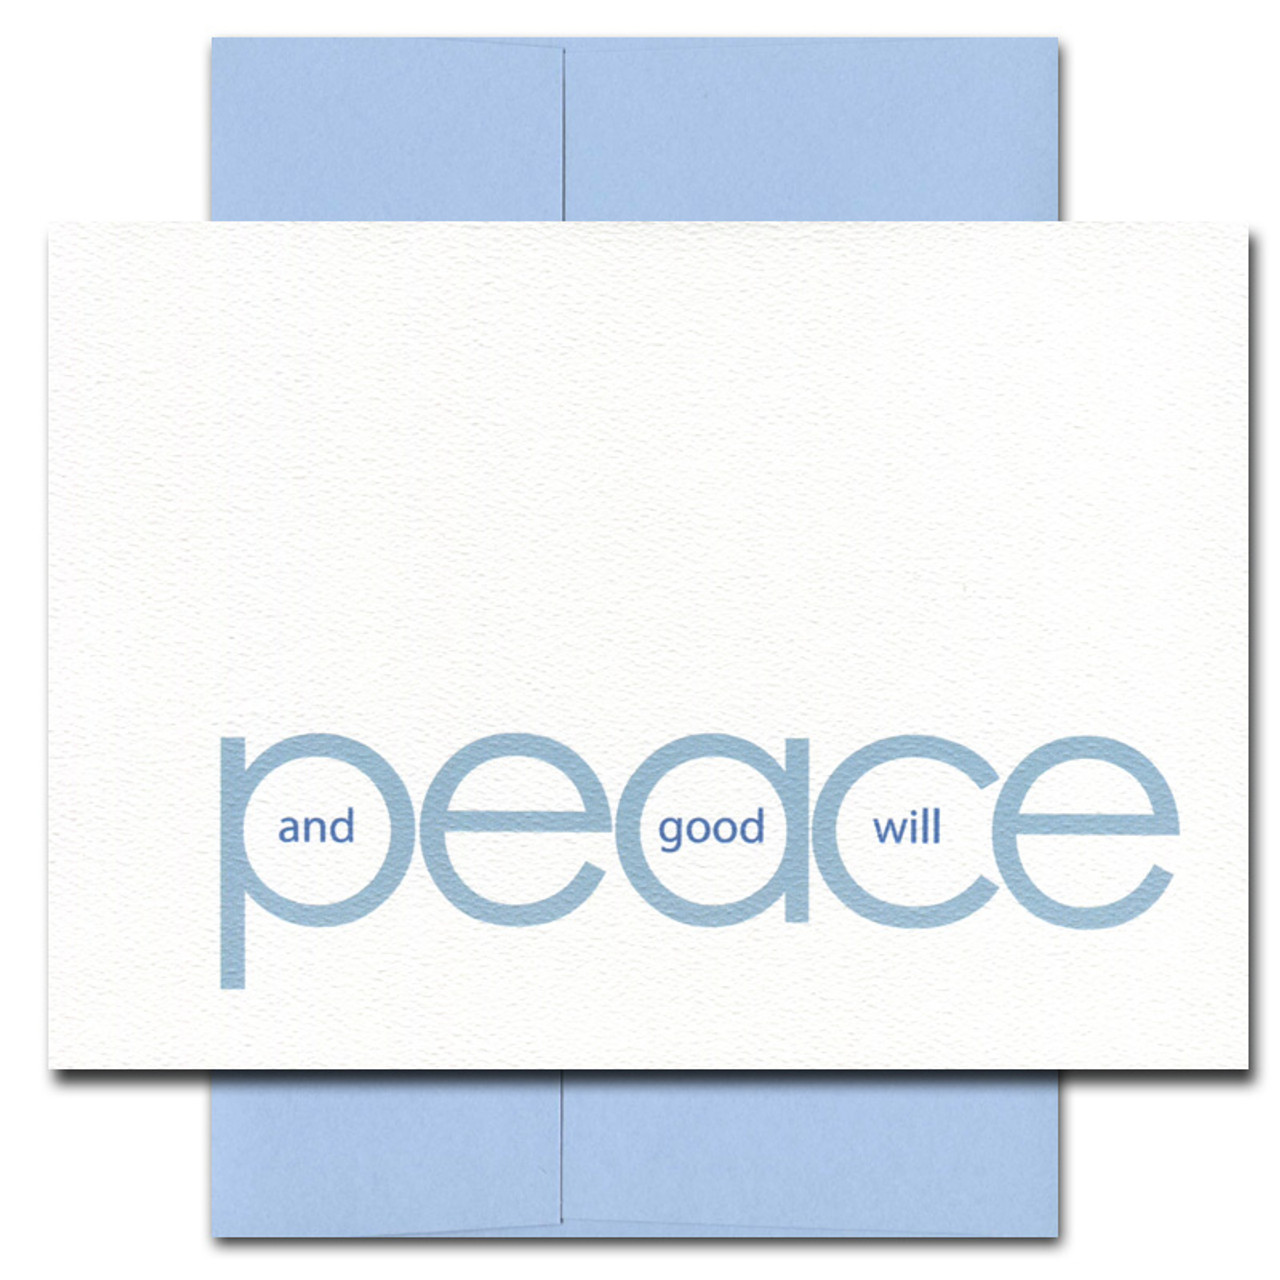 Peace and Goodwill card features blue text on bright white textured cardstock